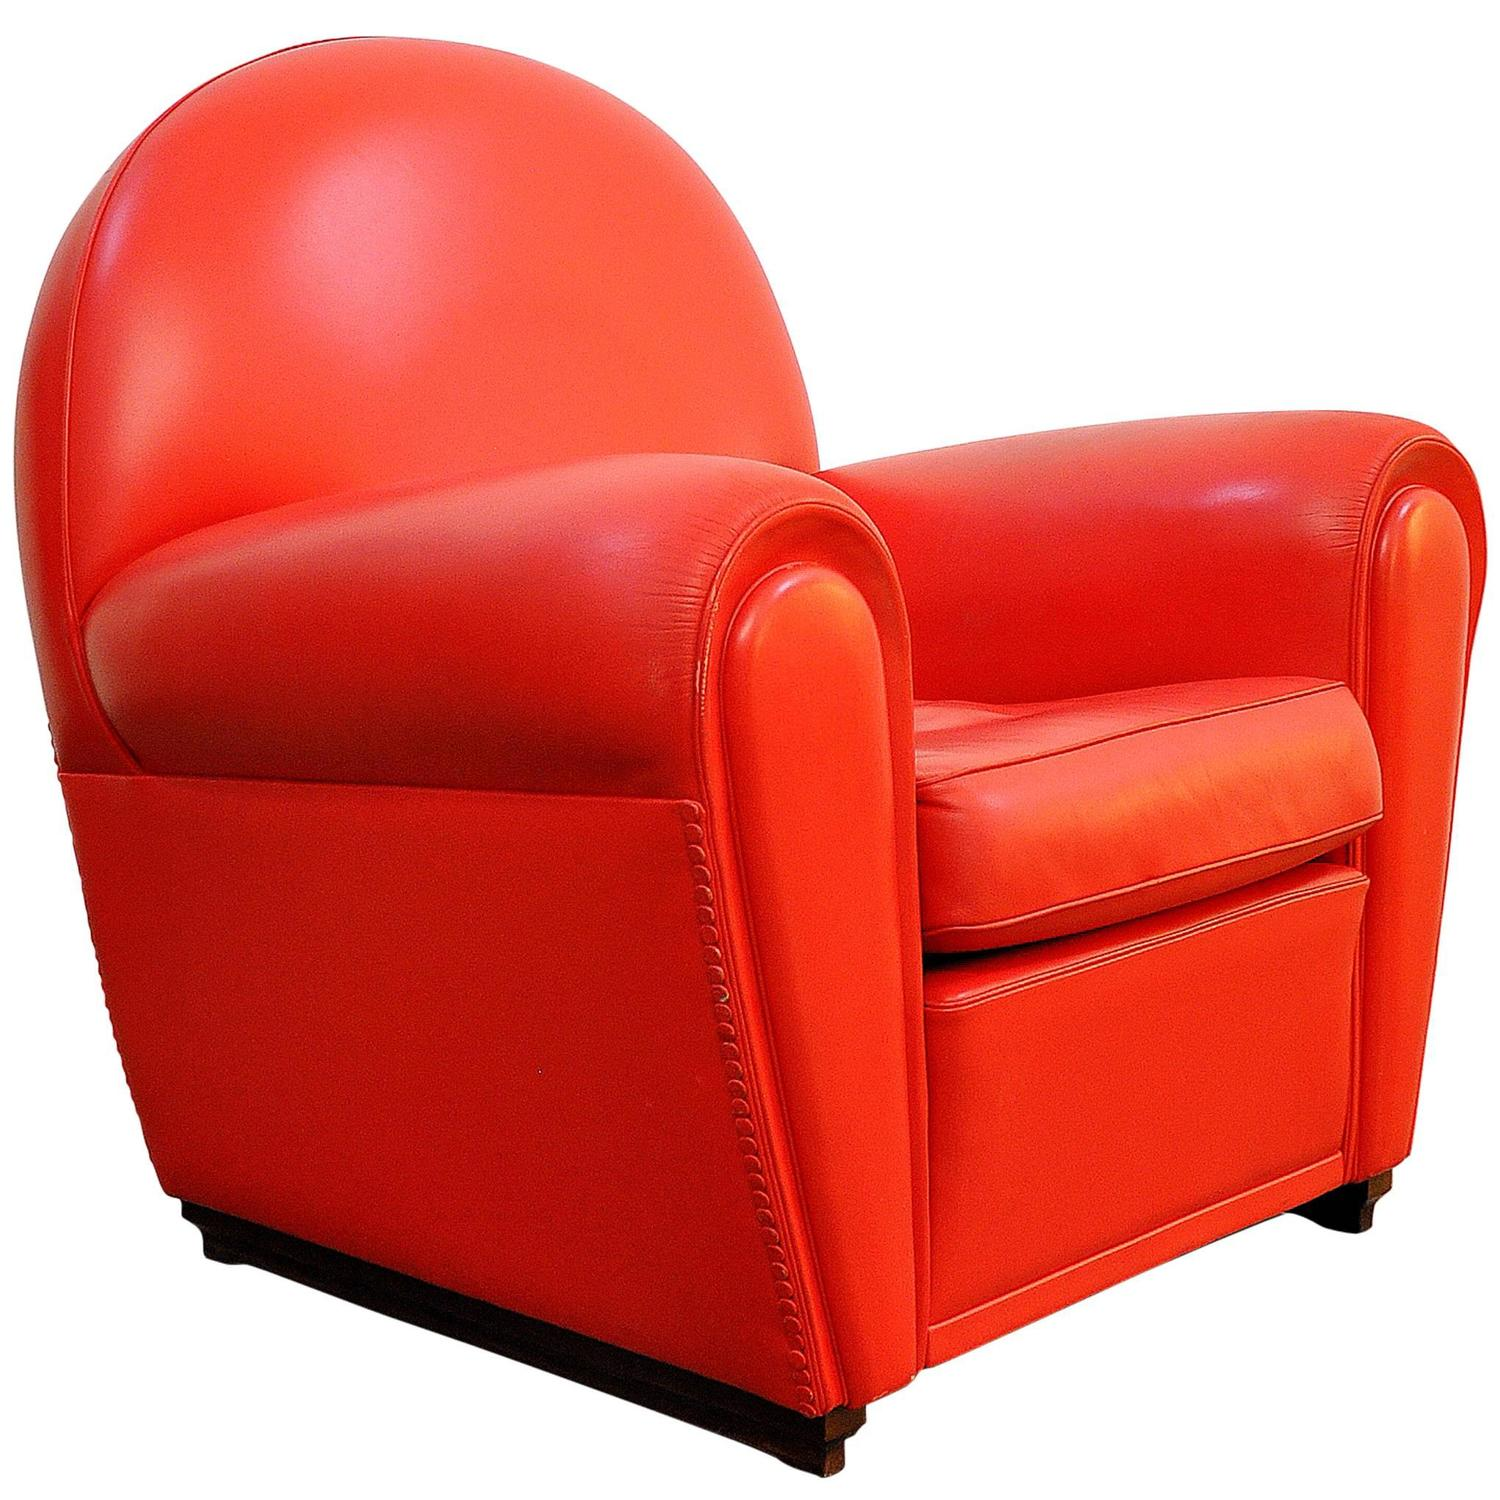 Merveilleux Poltrona Frau Vanity Fair Red Leather Club Chair At 1stdibs